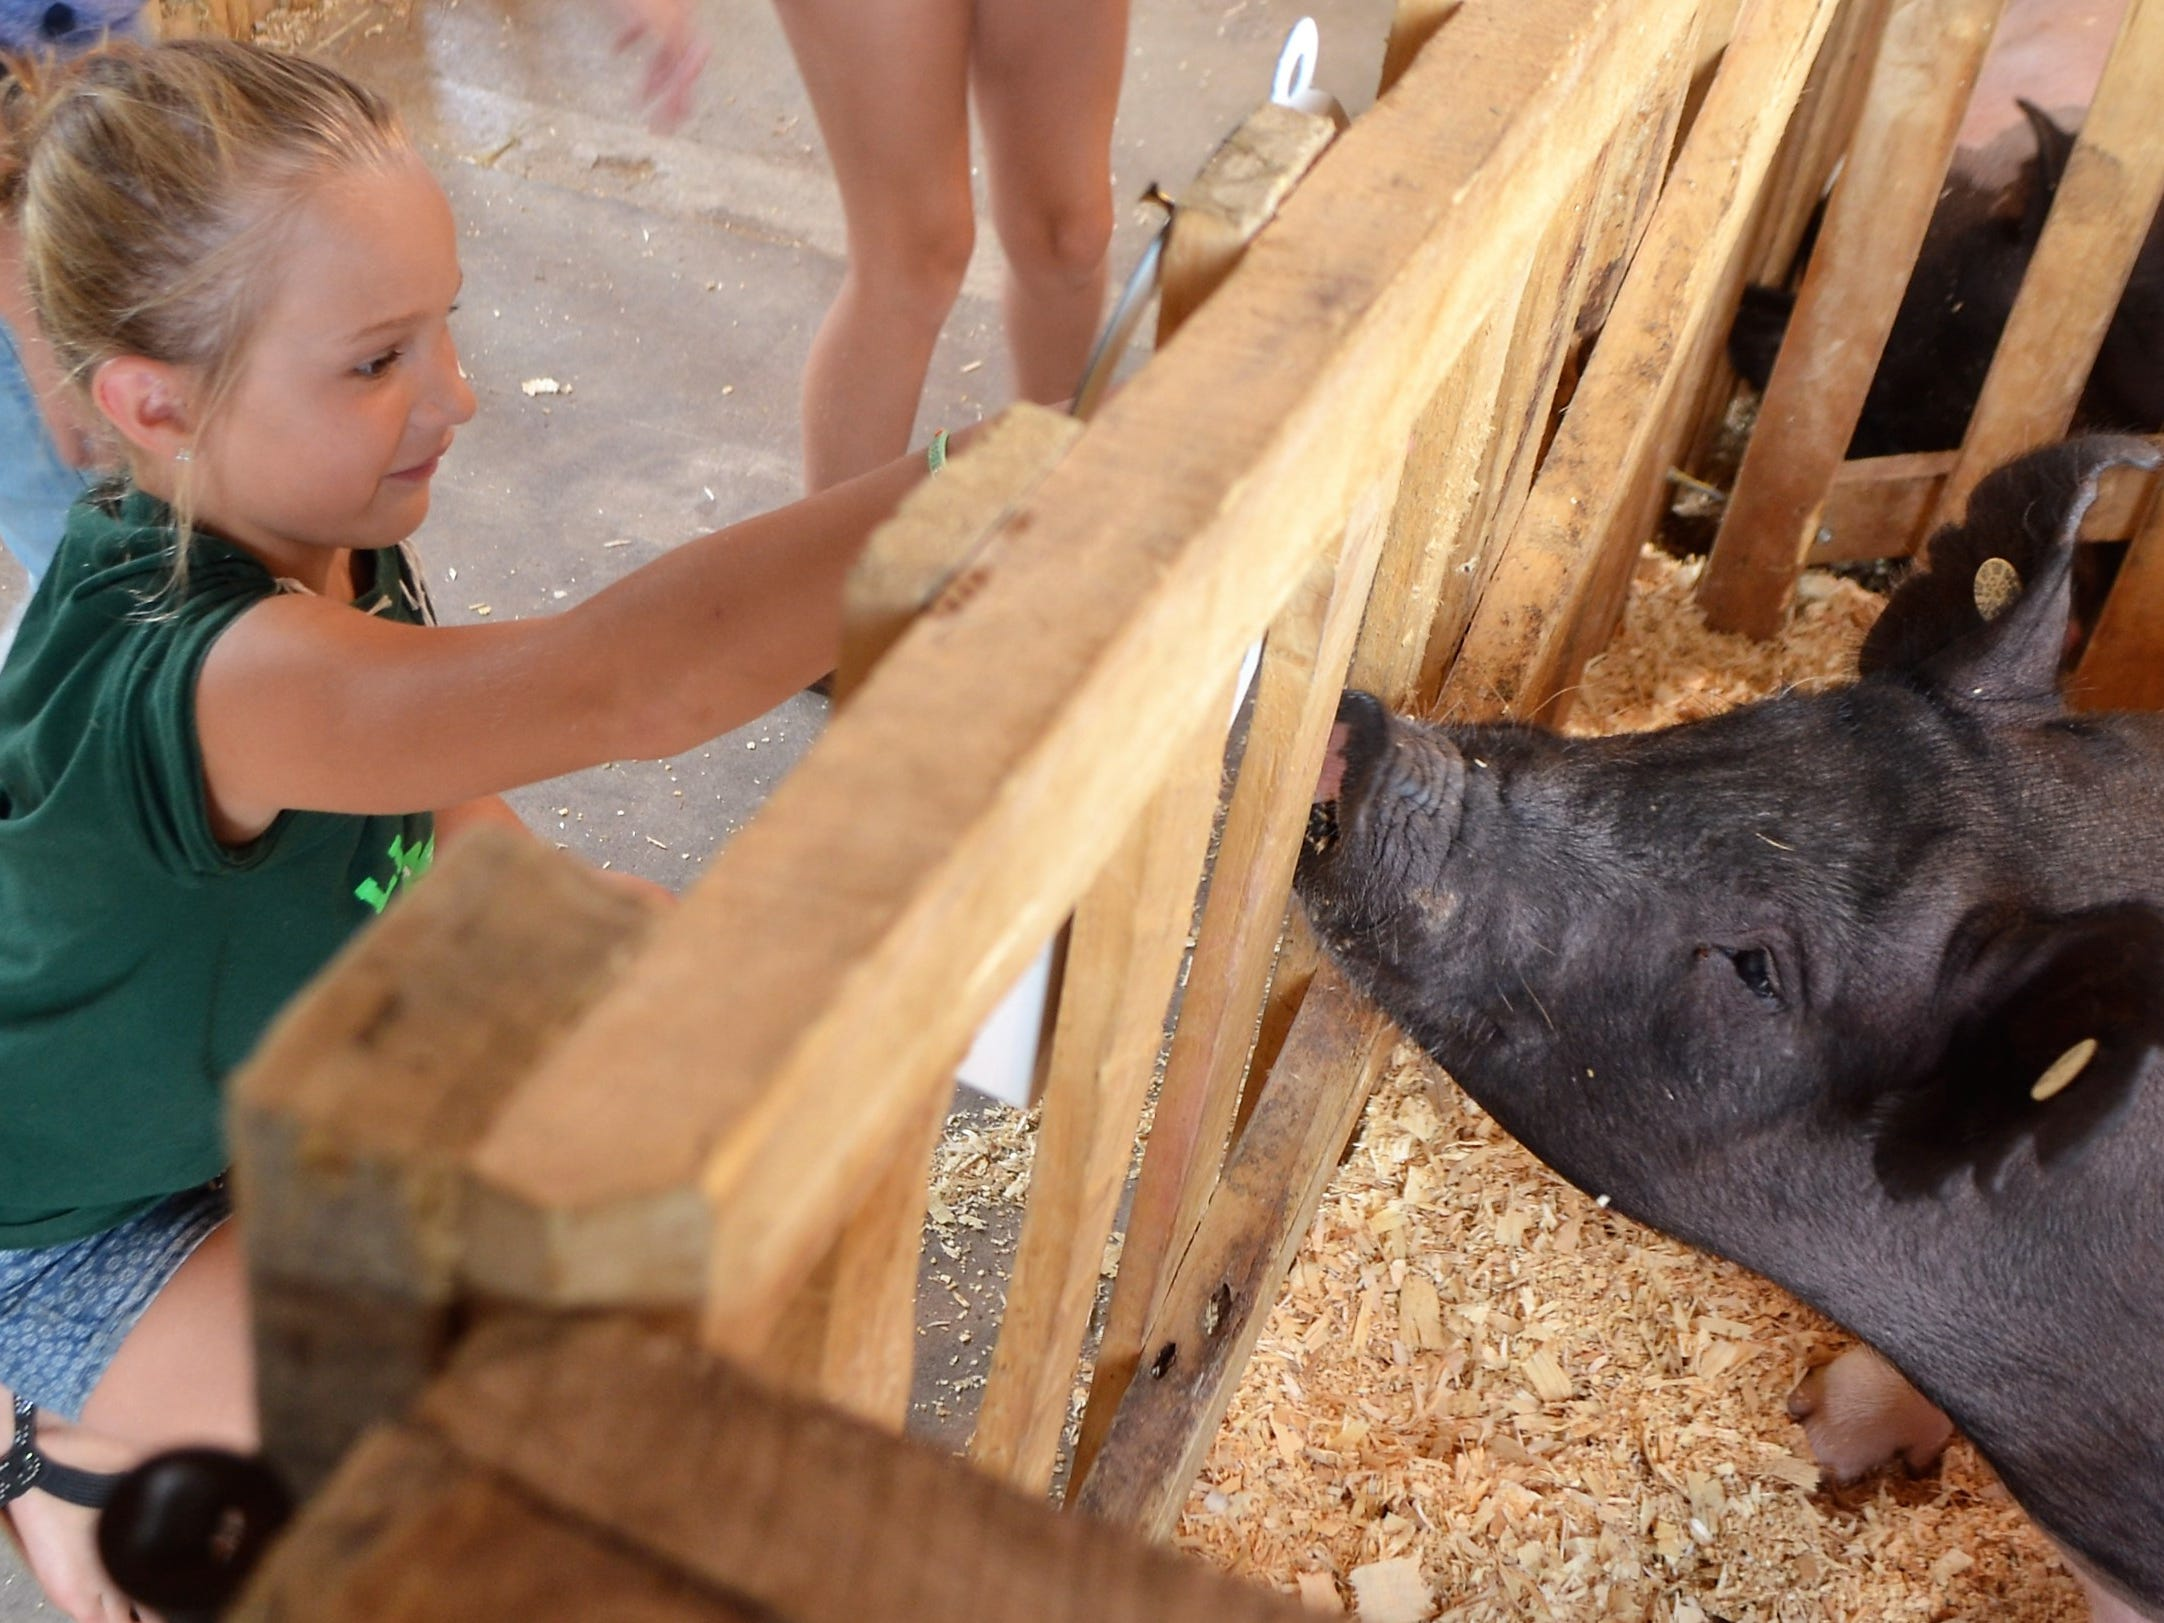 Kaitlyn Borkovec, 9, of Lena, gets close view of a pig at the Oconto County Fair on Saturday, Aug. 18.